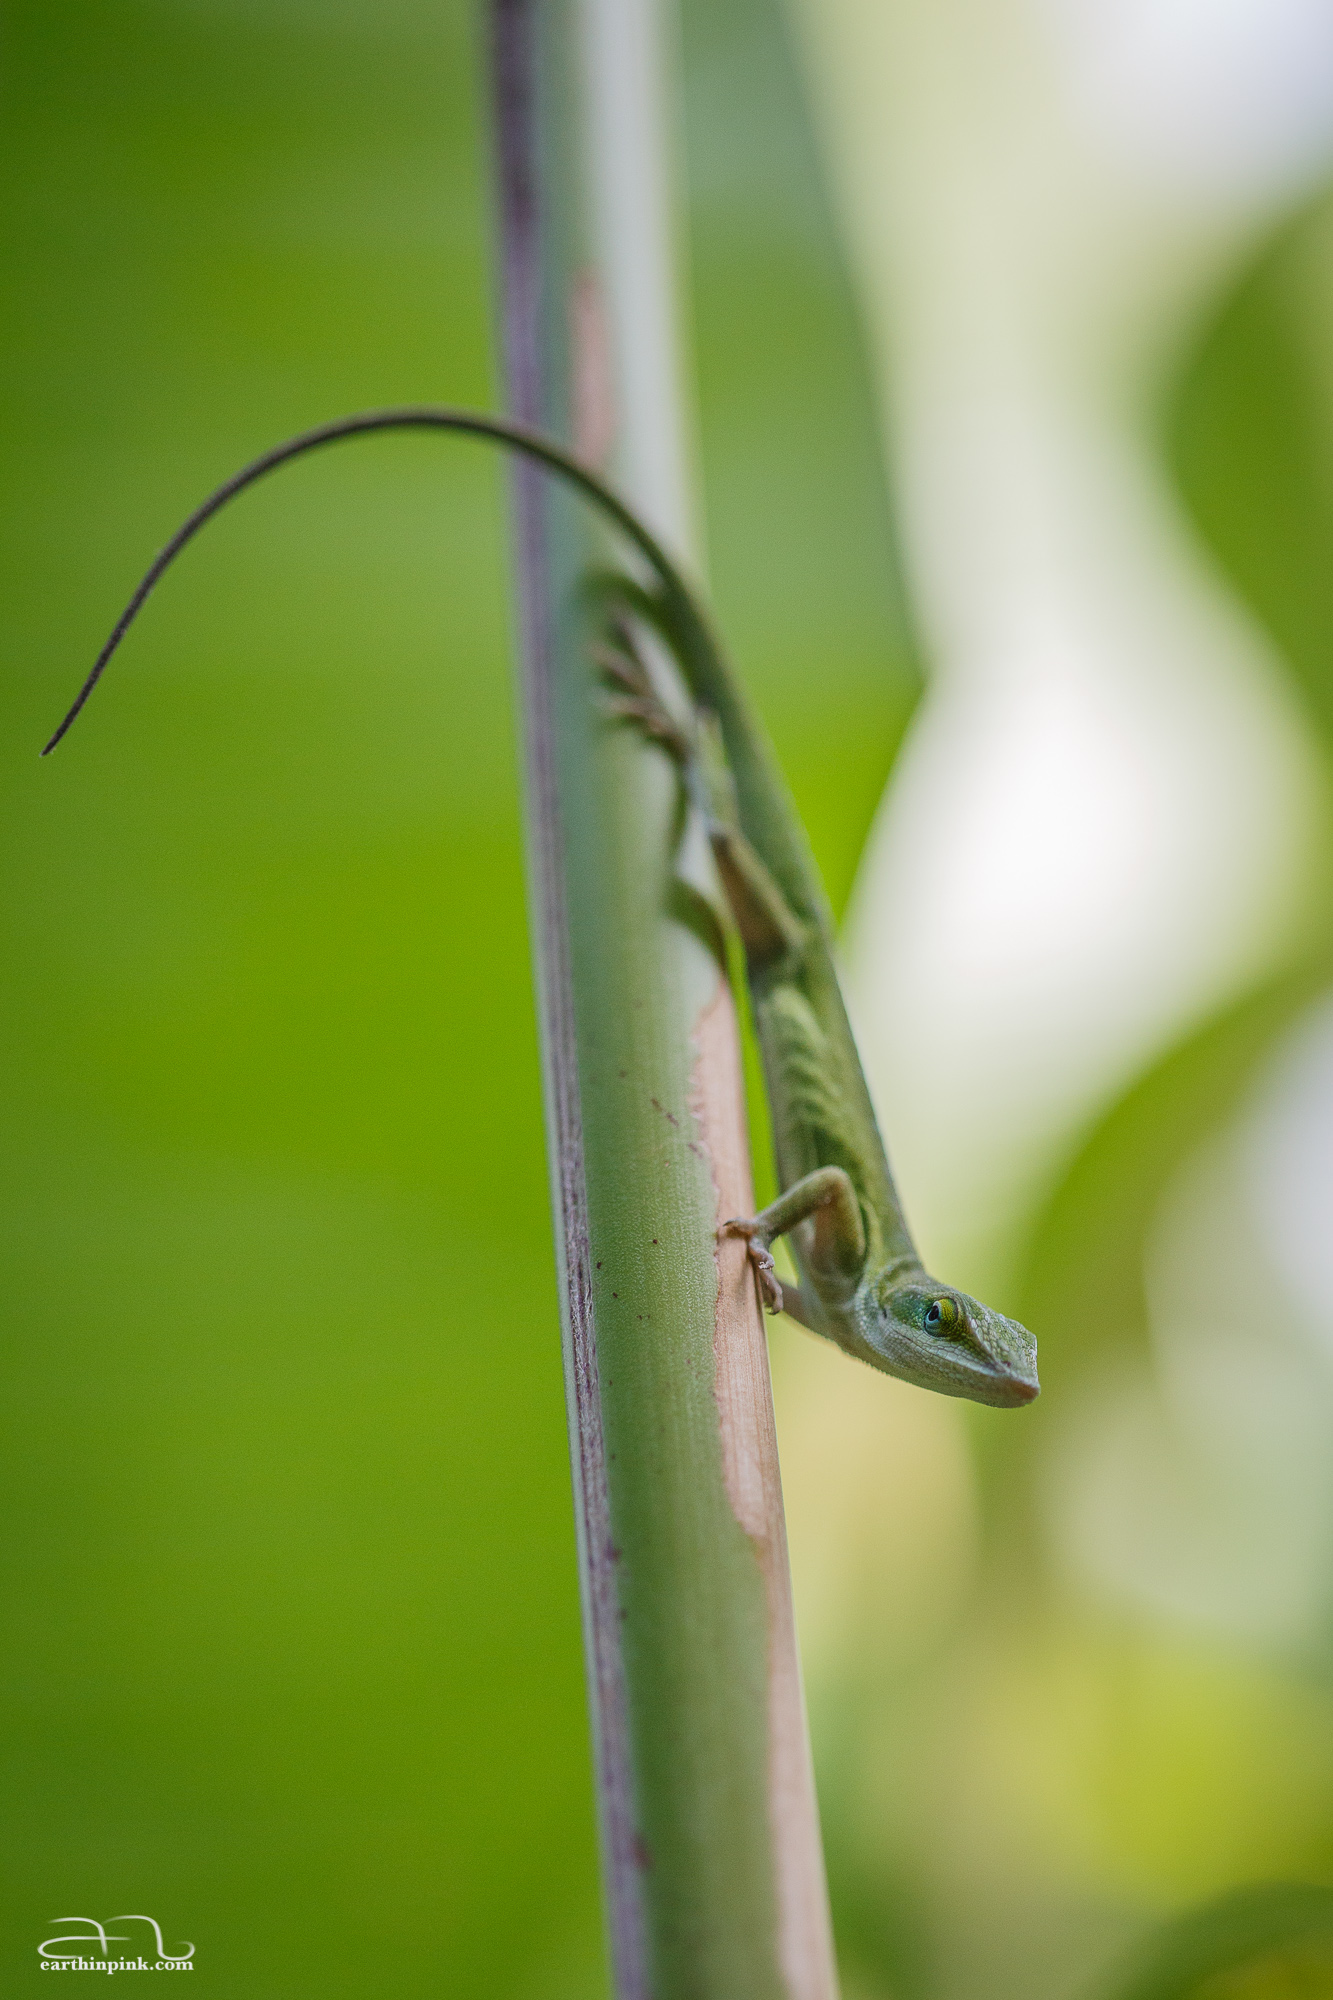 Aurora's first attempts at macro photography: an anole lizard in Karim's back-yard. With many thanks to Karim for lending us his macro lens and for the tips about how to focus it.